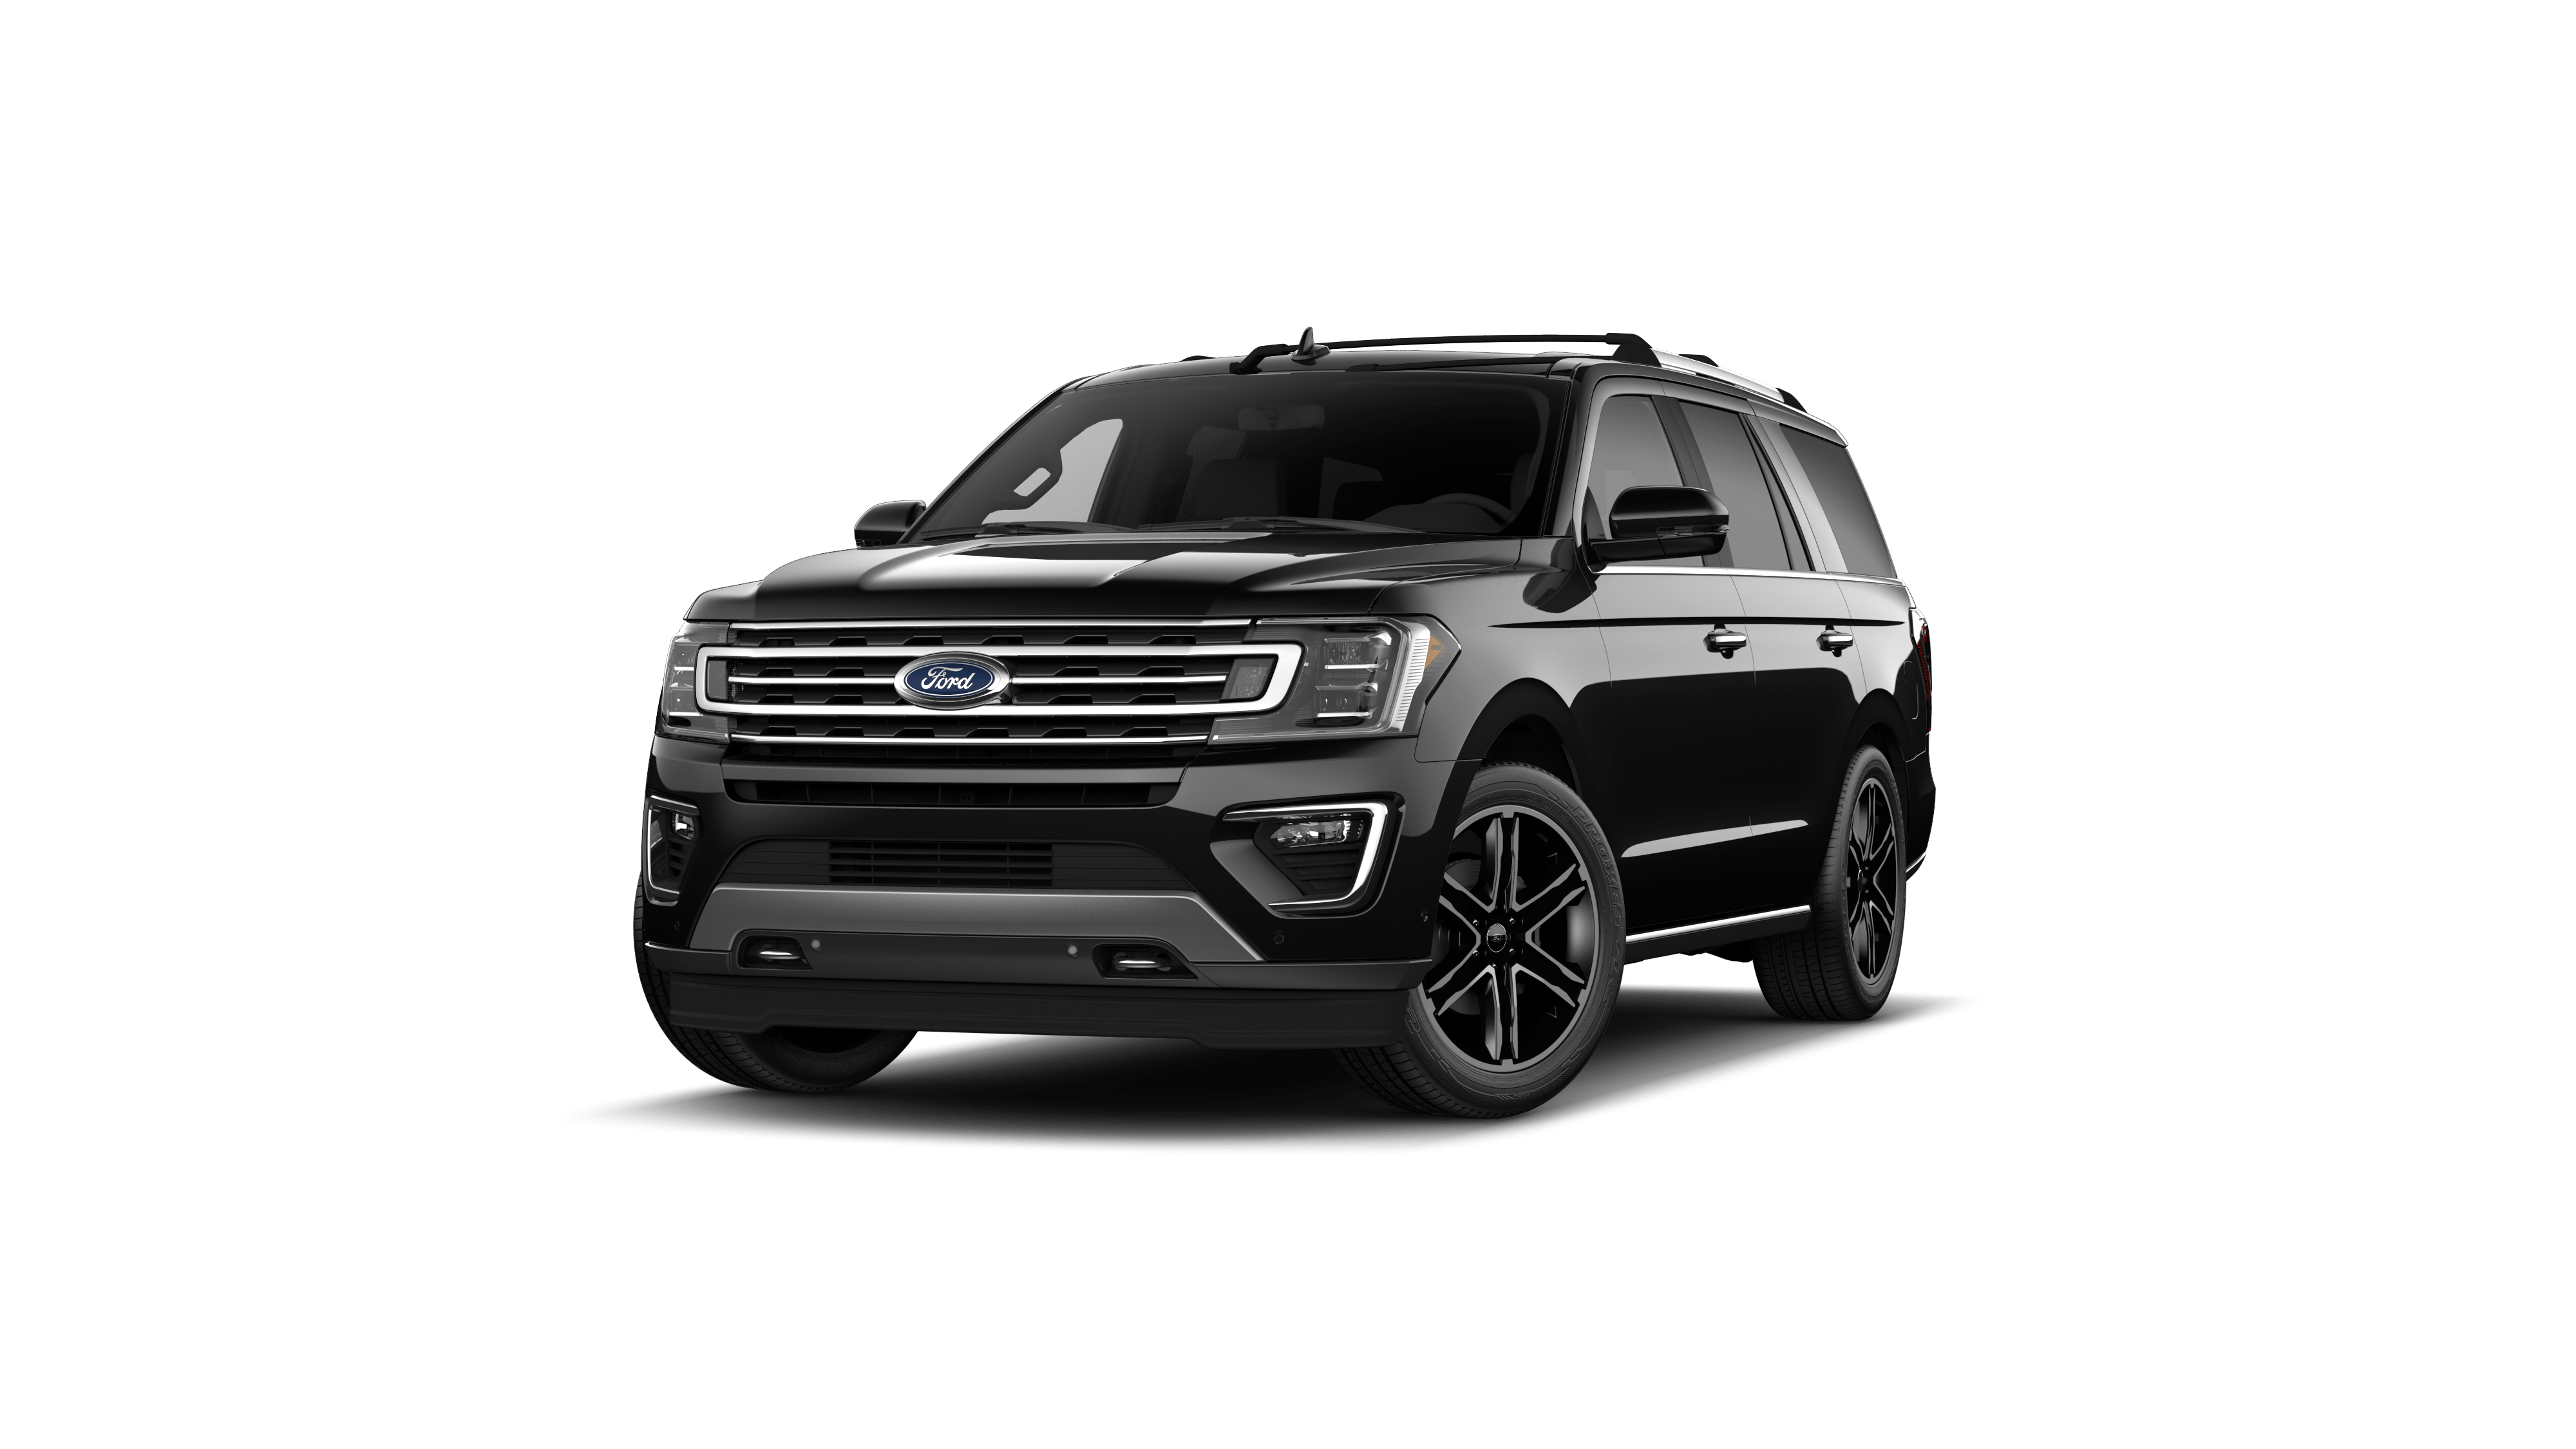 2020 Ford Expedition Vehicle Photo in Quakertown, PA 18951-1403